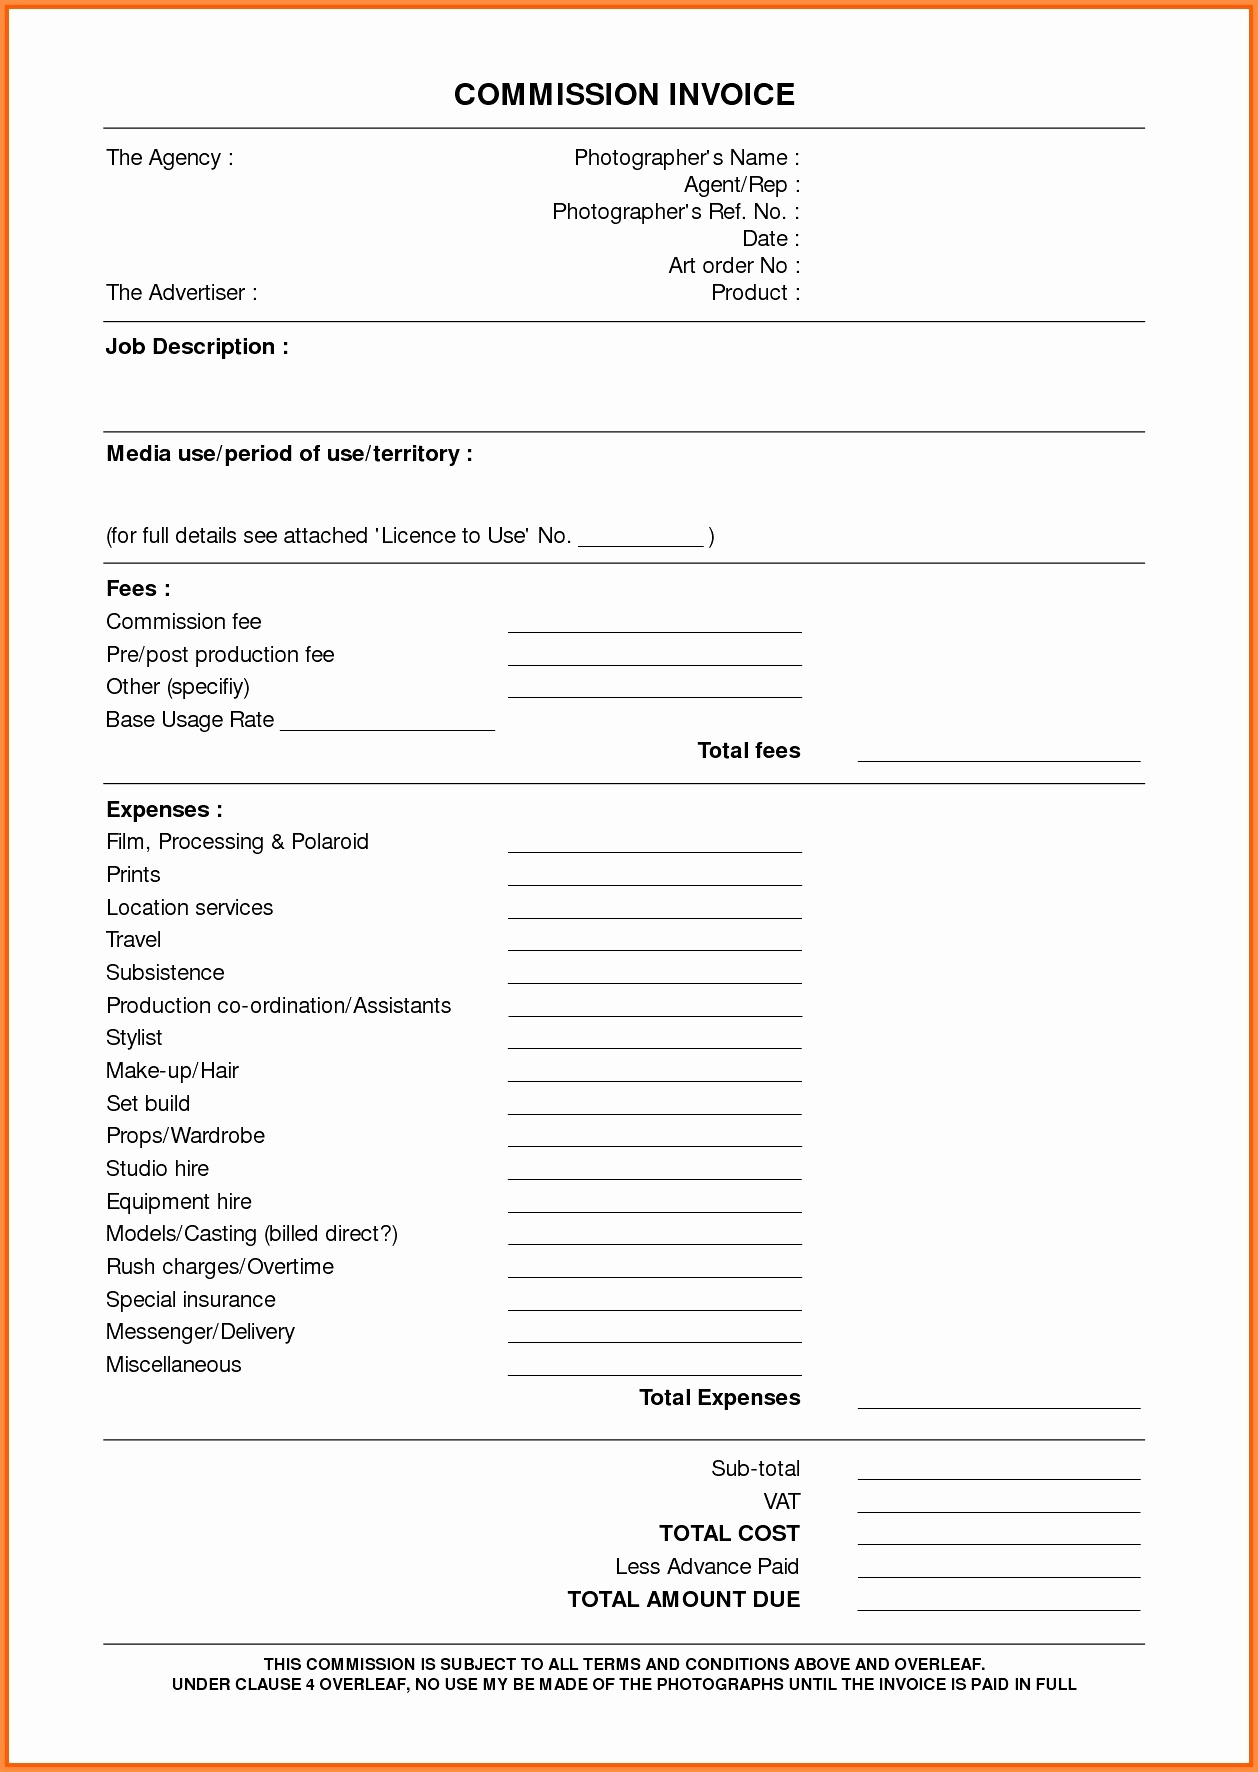 Free Printable Notary Invoice Template 50 Lovely Documents Ideas - Free Printable Documents